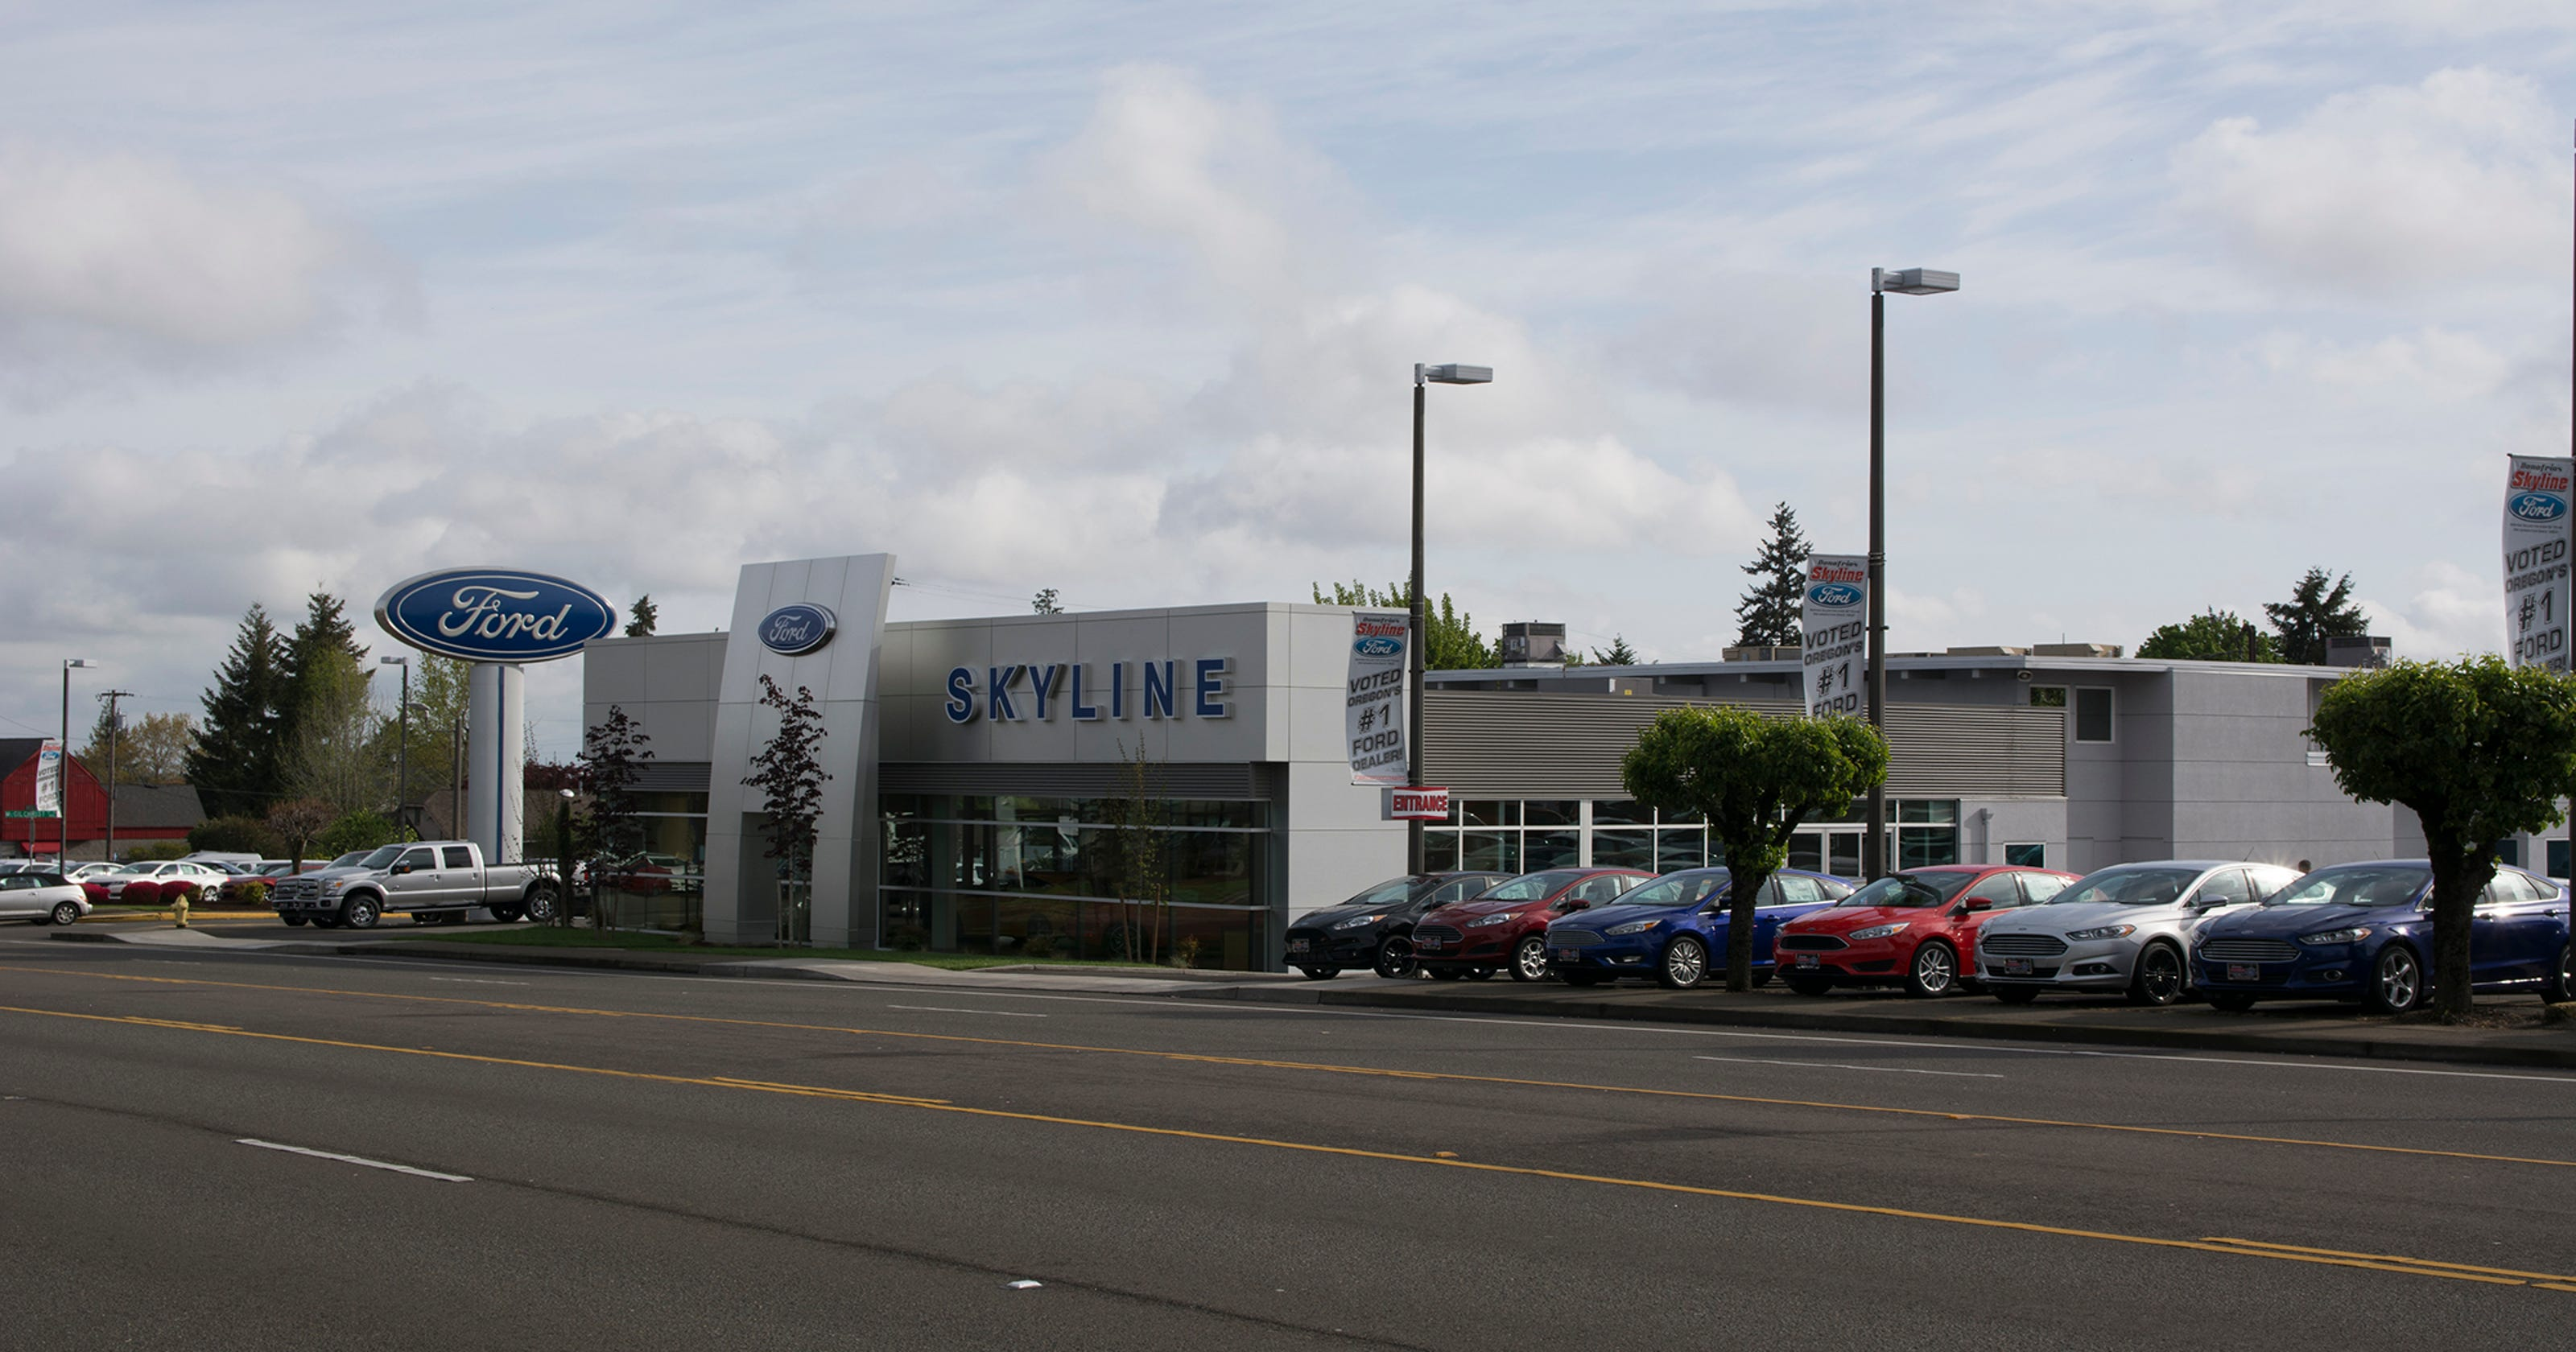 Skyline named best ford dealer in oregon for 4th year